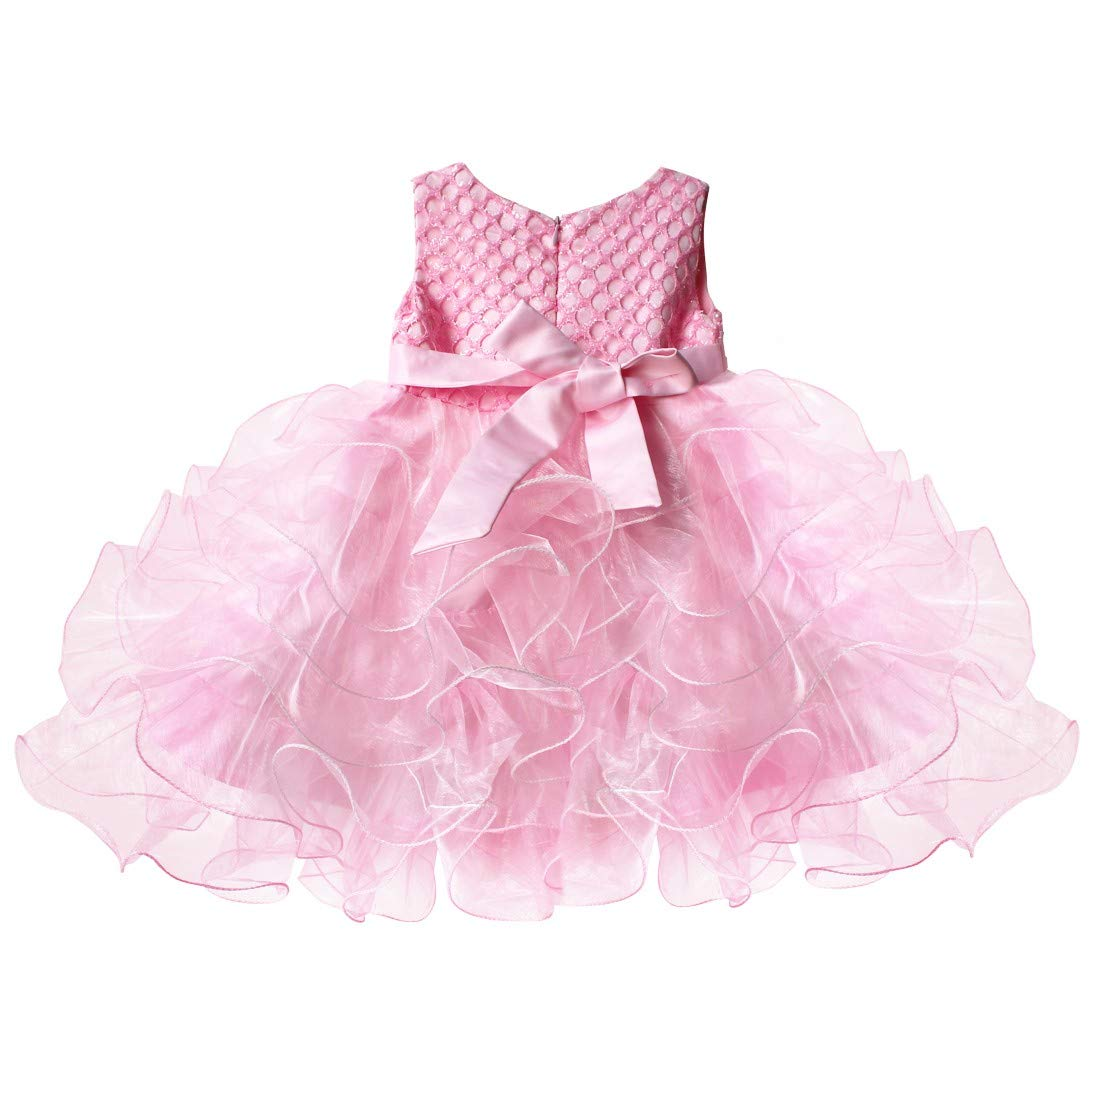 Agoky Baby Girls Sleeveless Beading Princess Flower Girl Dress Bubble Skirt for Wedding Party Pageant 3 Months 4 Years